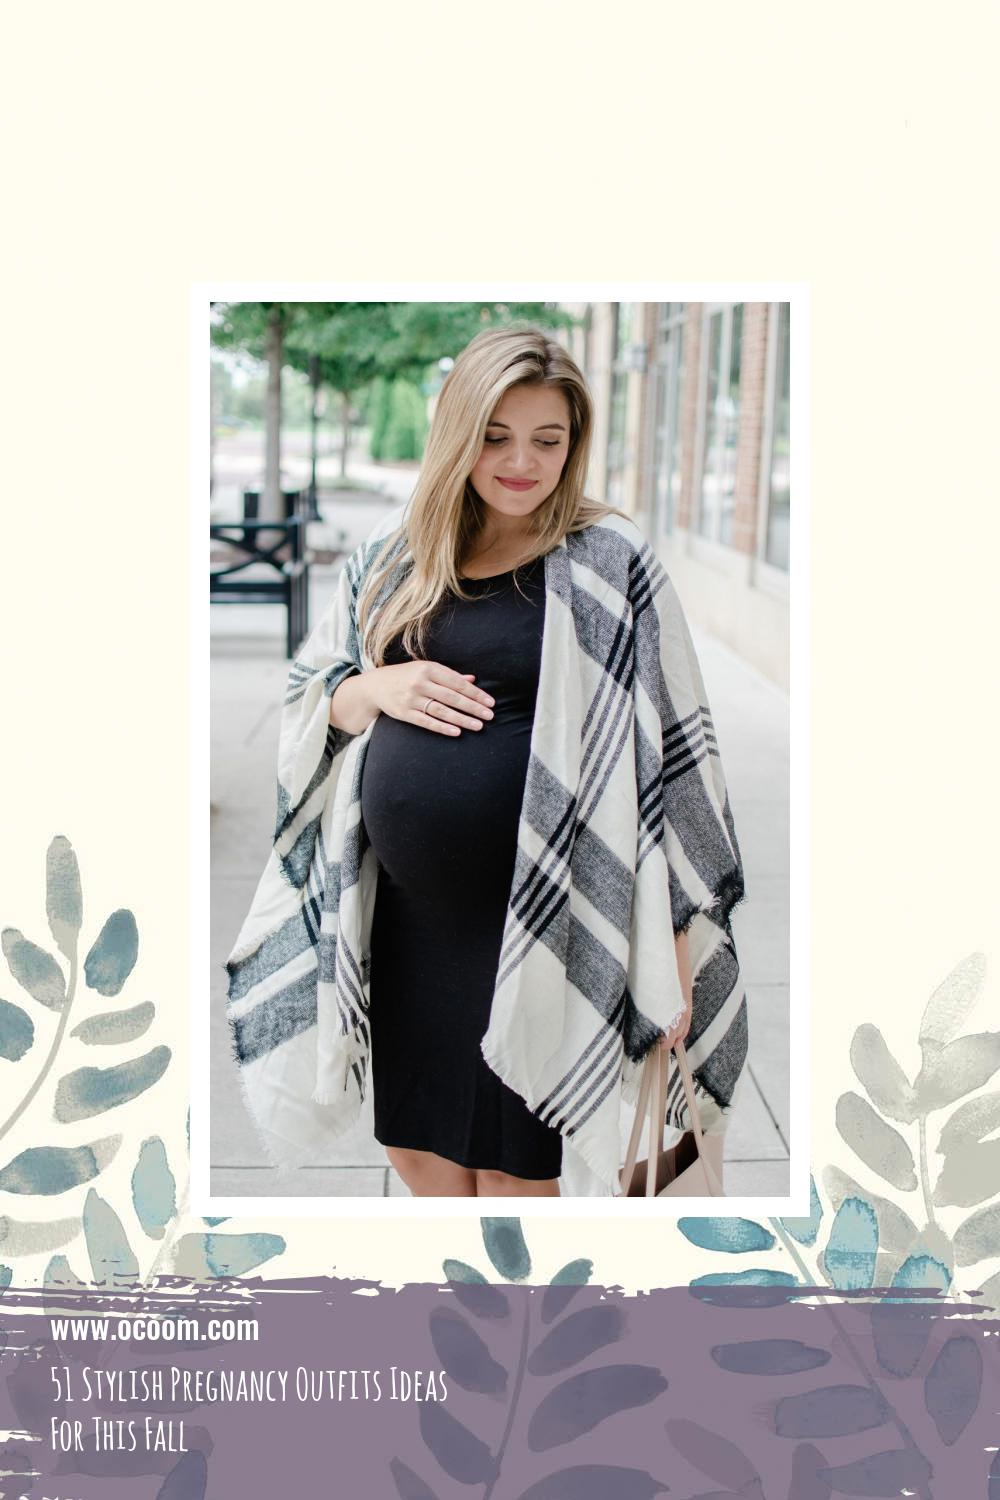 51 Stylish Pregnancy Outfits Ideas For This Fall 23